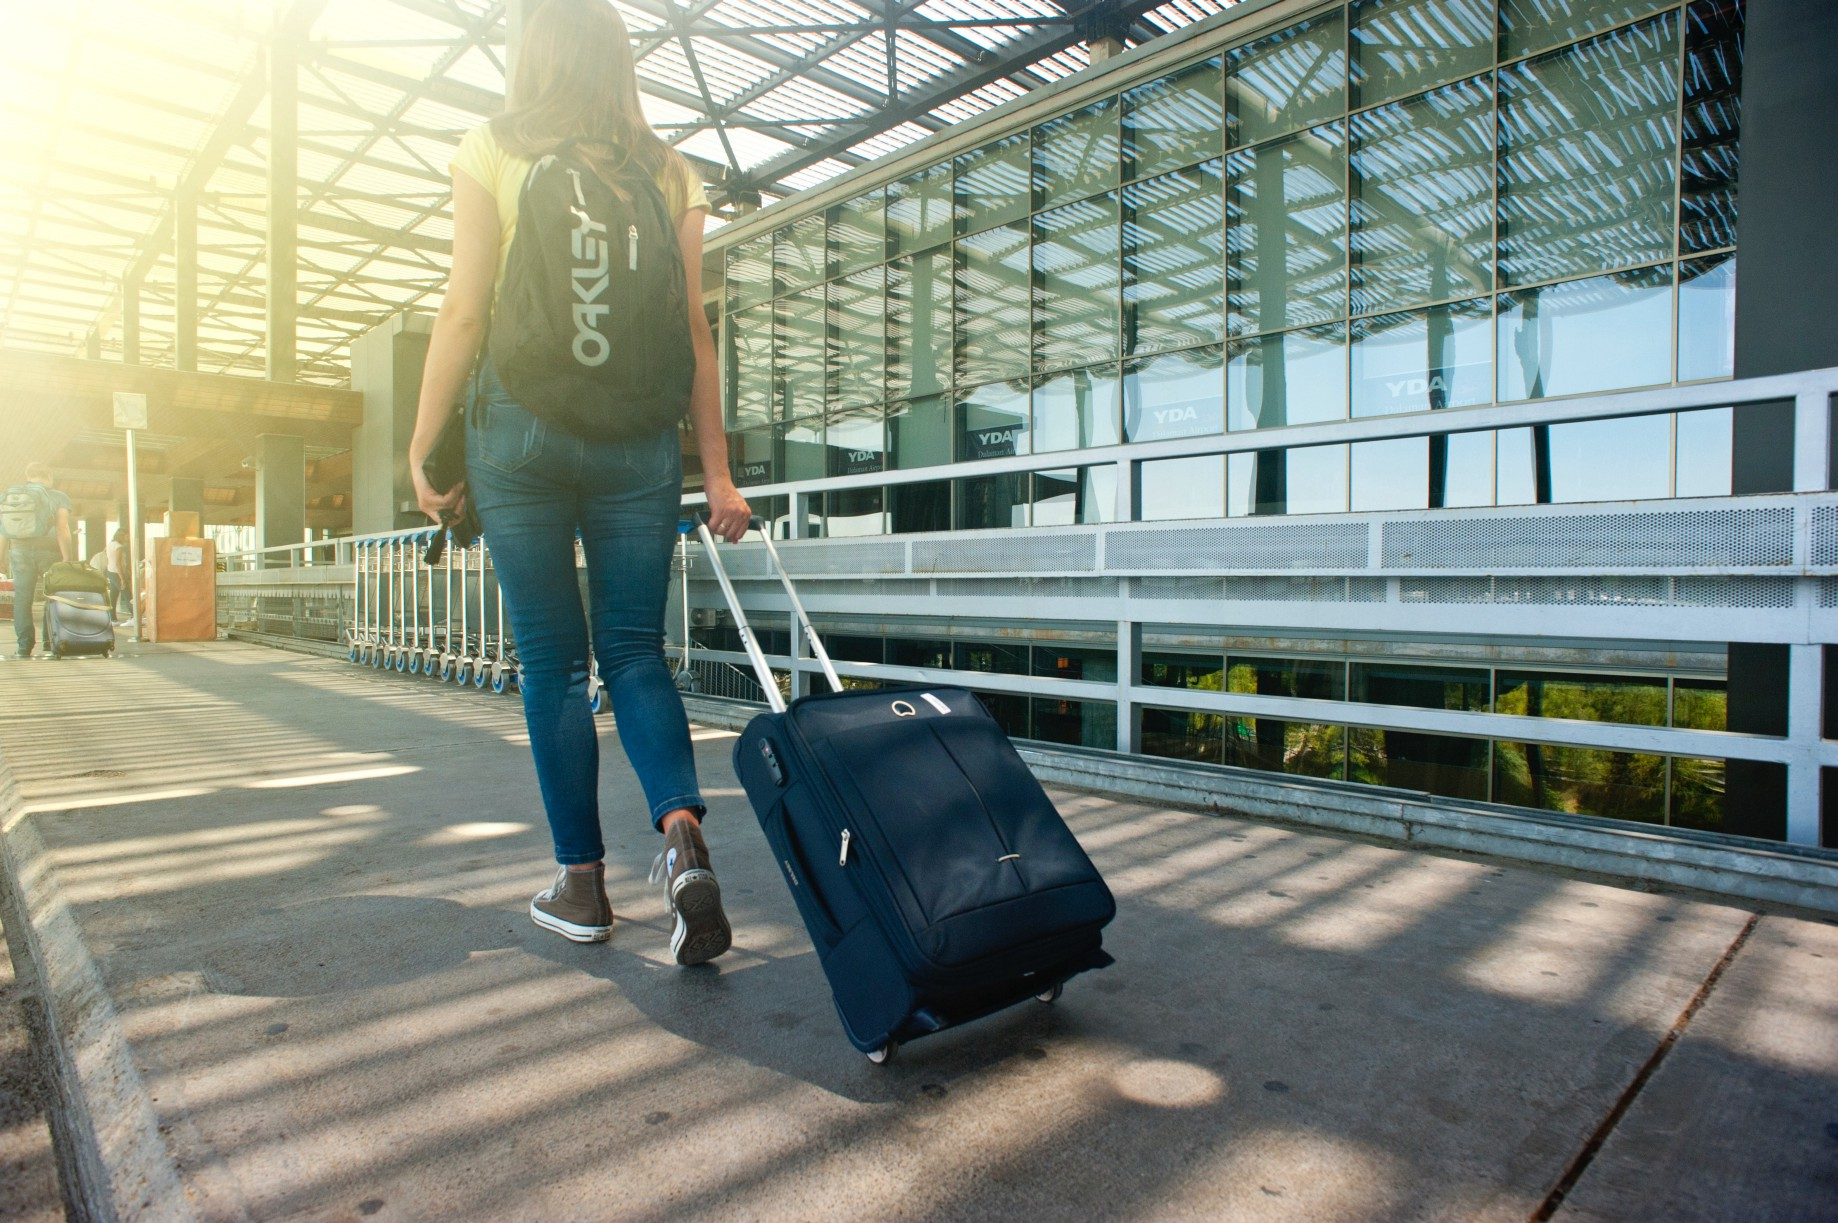 Don't Use Public USB Charging Stations, and Other Cyber Travel Tips